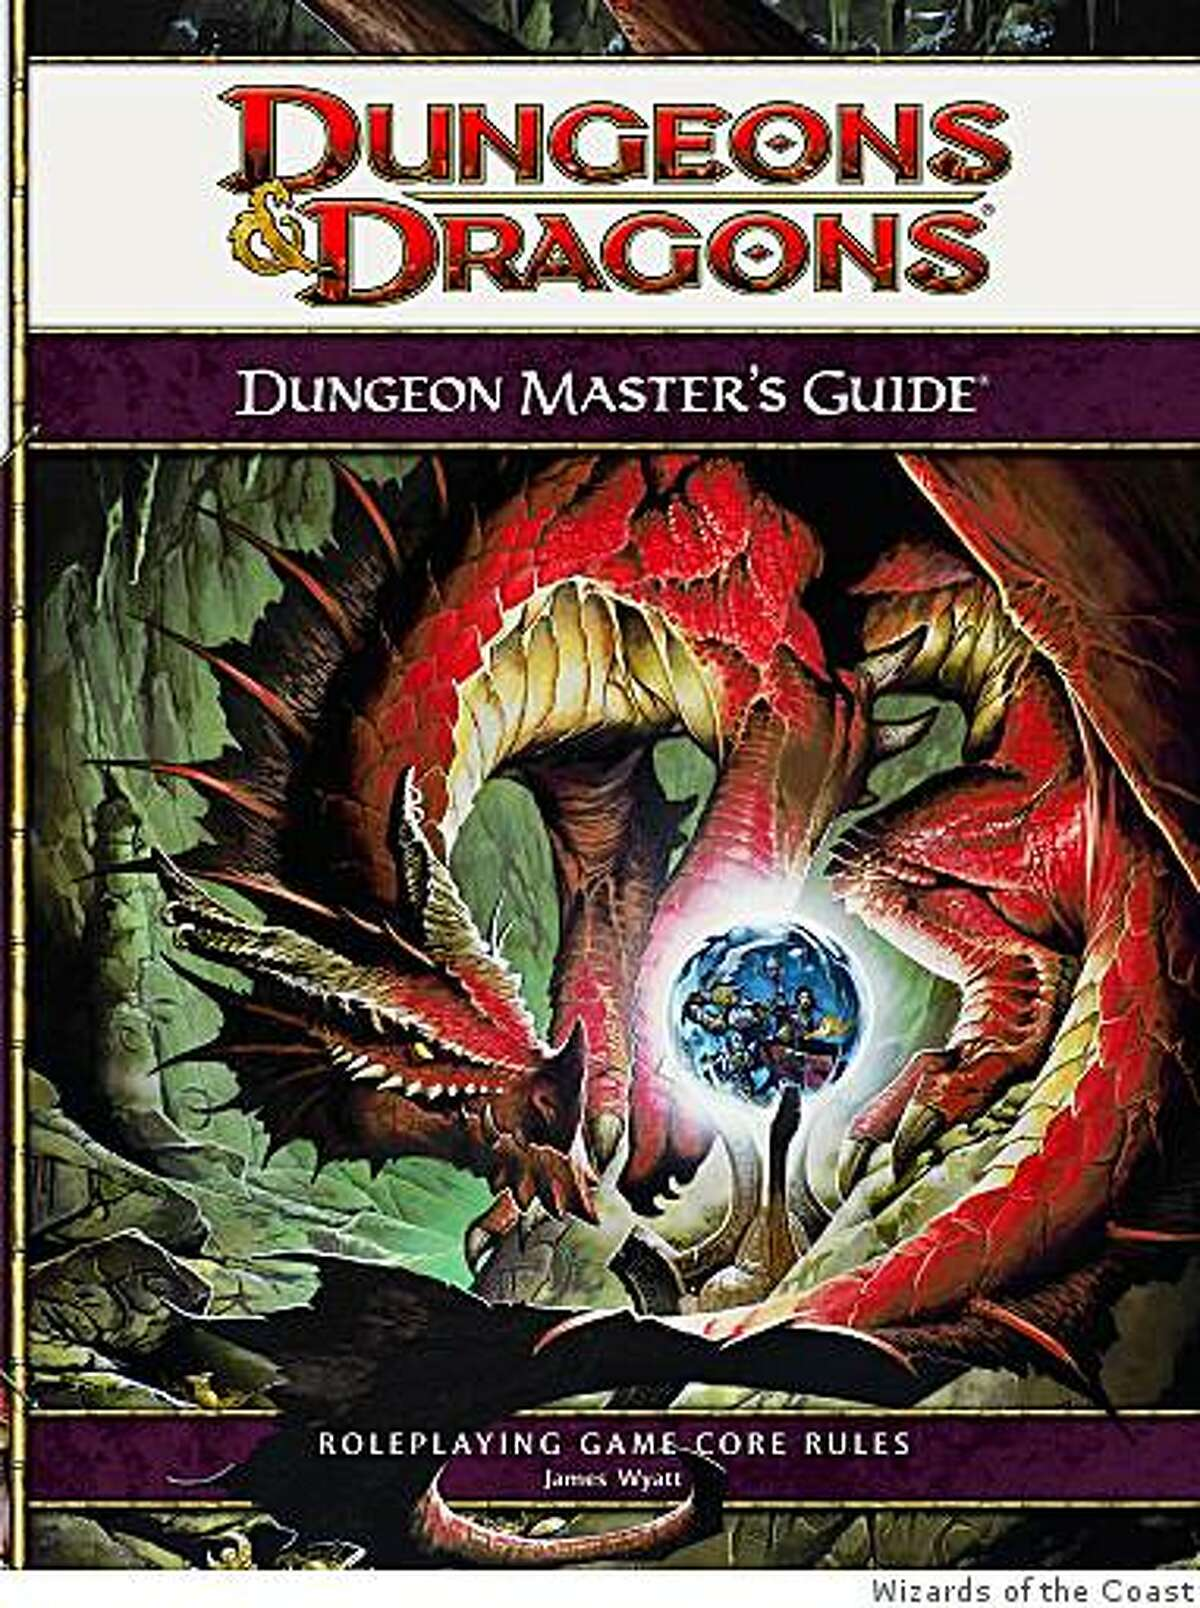 The book cover art of the fourth edition of Dungeons and Dragons: Dungeon Master's Guide. Published by Wizards of the Coast (subsidiary of Hasbro). The book retails for $34.95. The box set which includes the Dungeon Master's Guide, Player's Handbook and Monster Manual retails for $104.95.